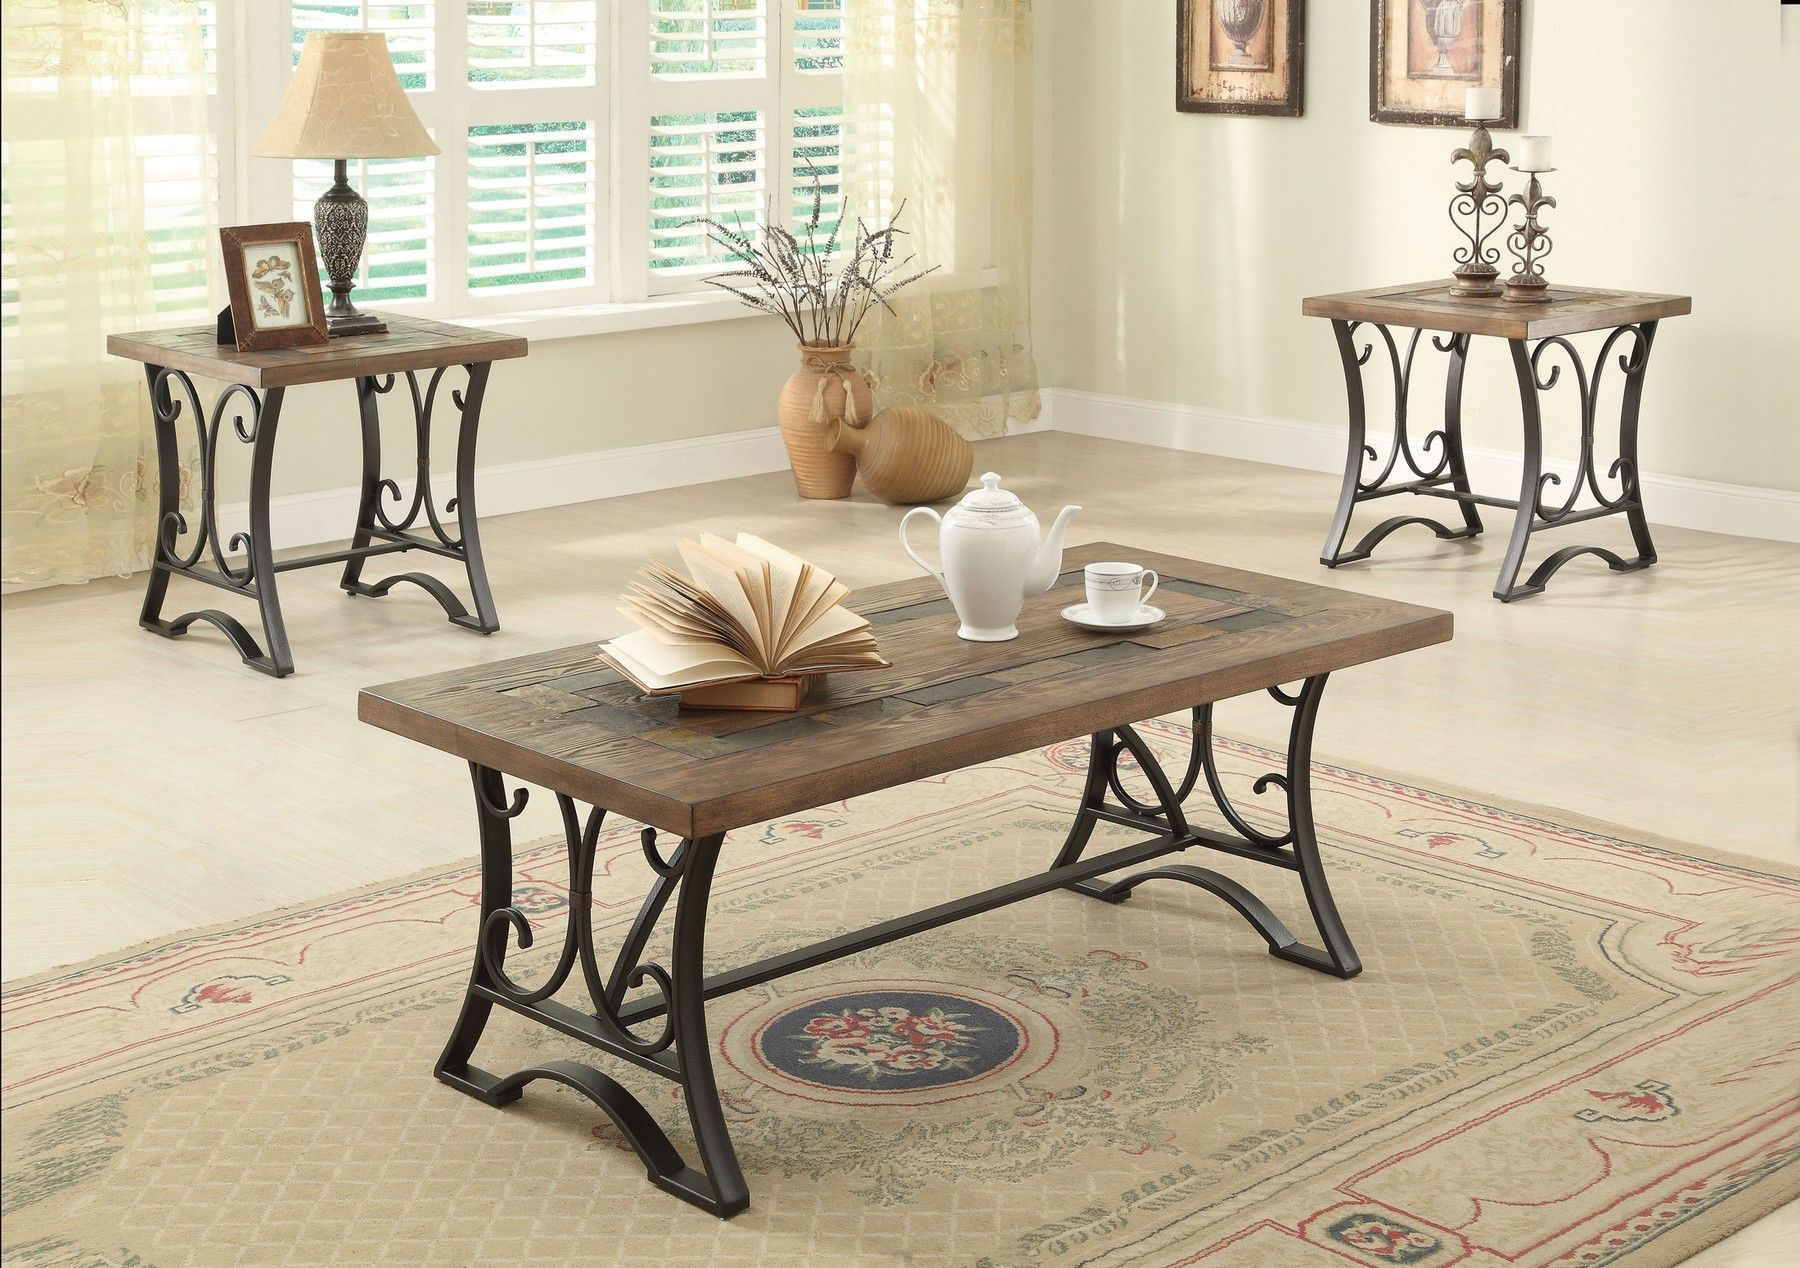 Kiele Coffee Table 2 End Tables 81125 Acme Corporation Coffee Tables Coffee Table Setting Coffee And End Tables Coffee Table [ 1268 x 1800 Pixel ]